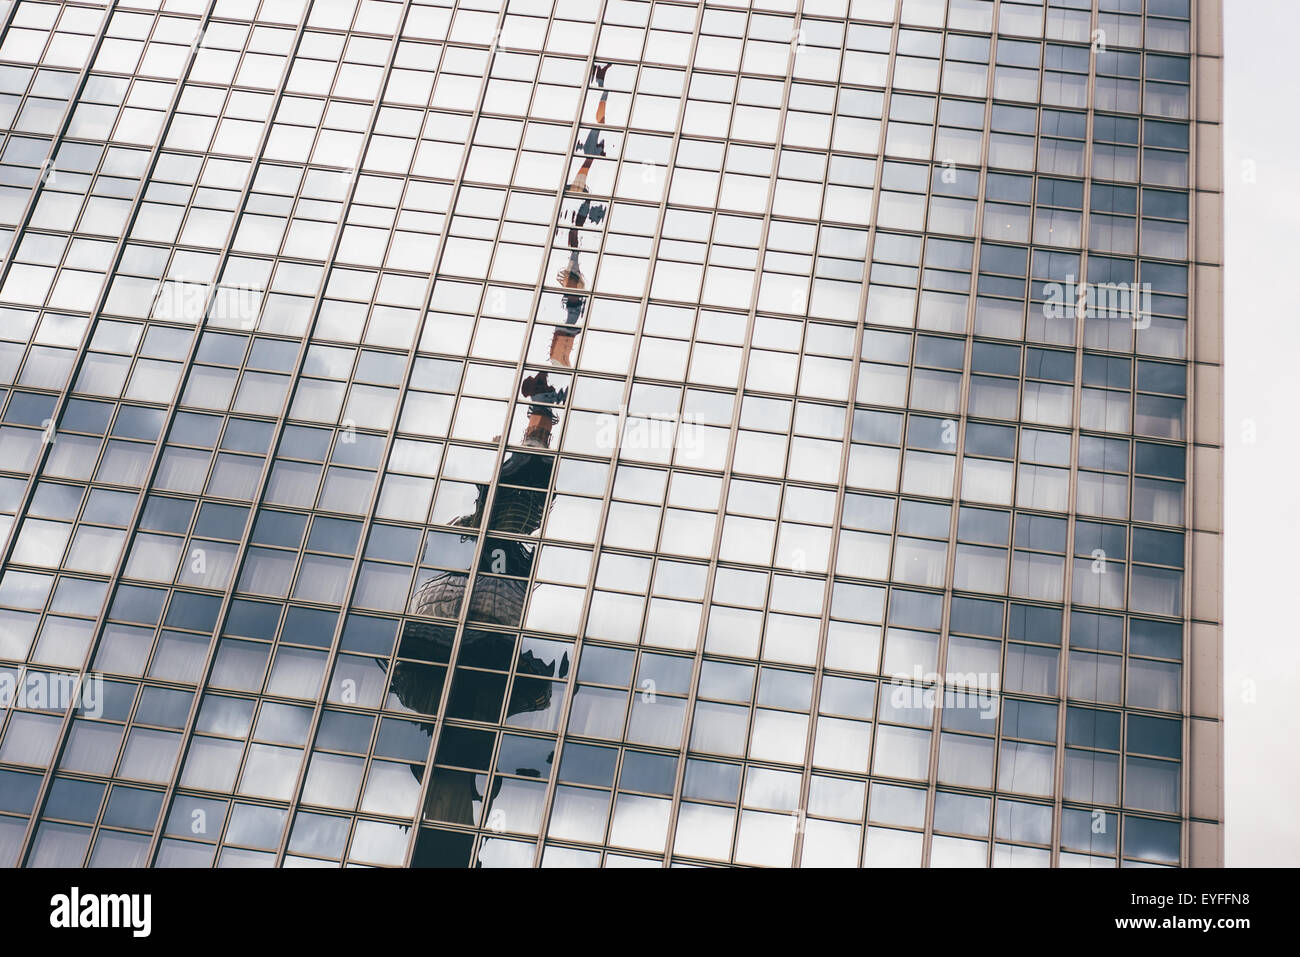 The Berlin TV tower is reflected in the windows of the Radisson Blu hotel as seen from Alexanderplatz. - Stock Image